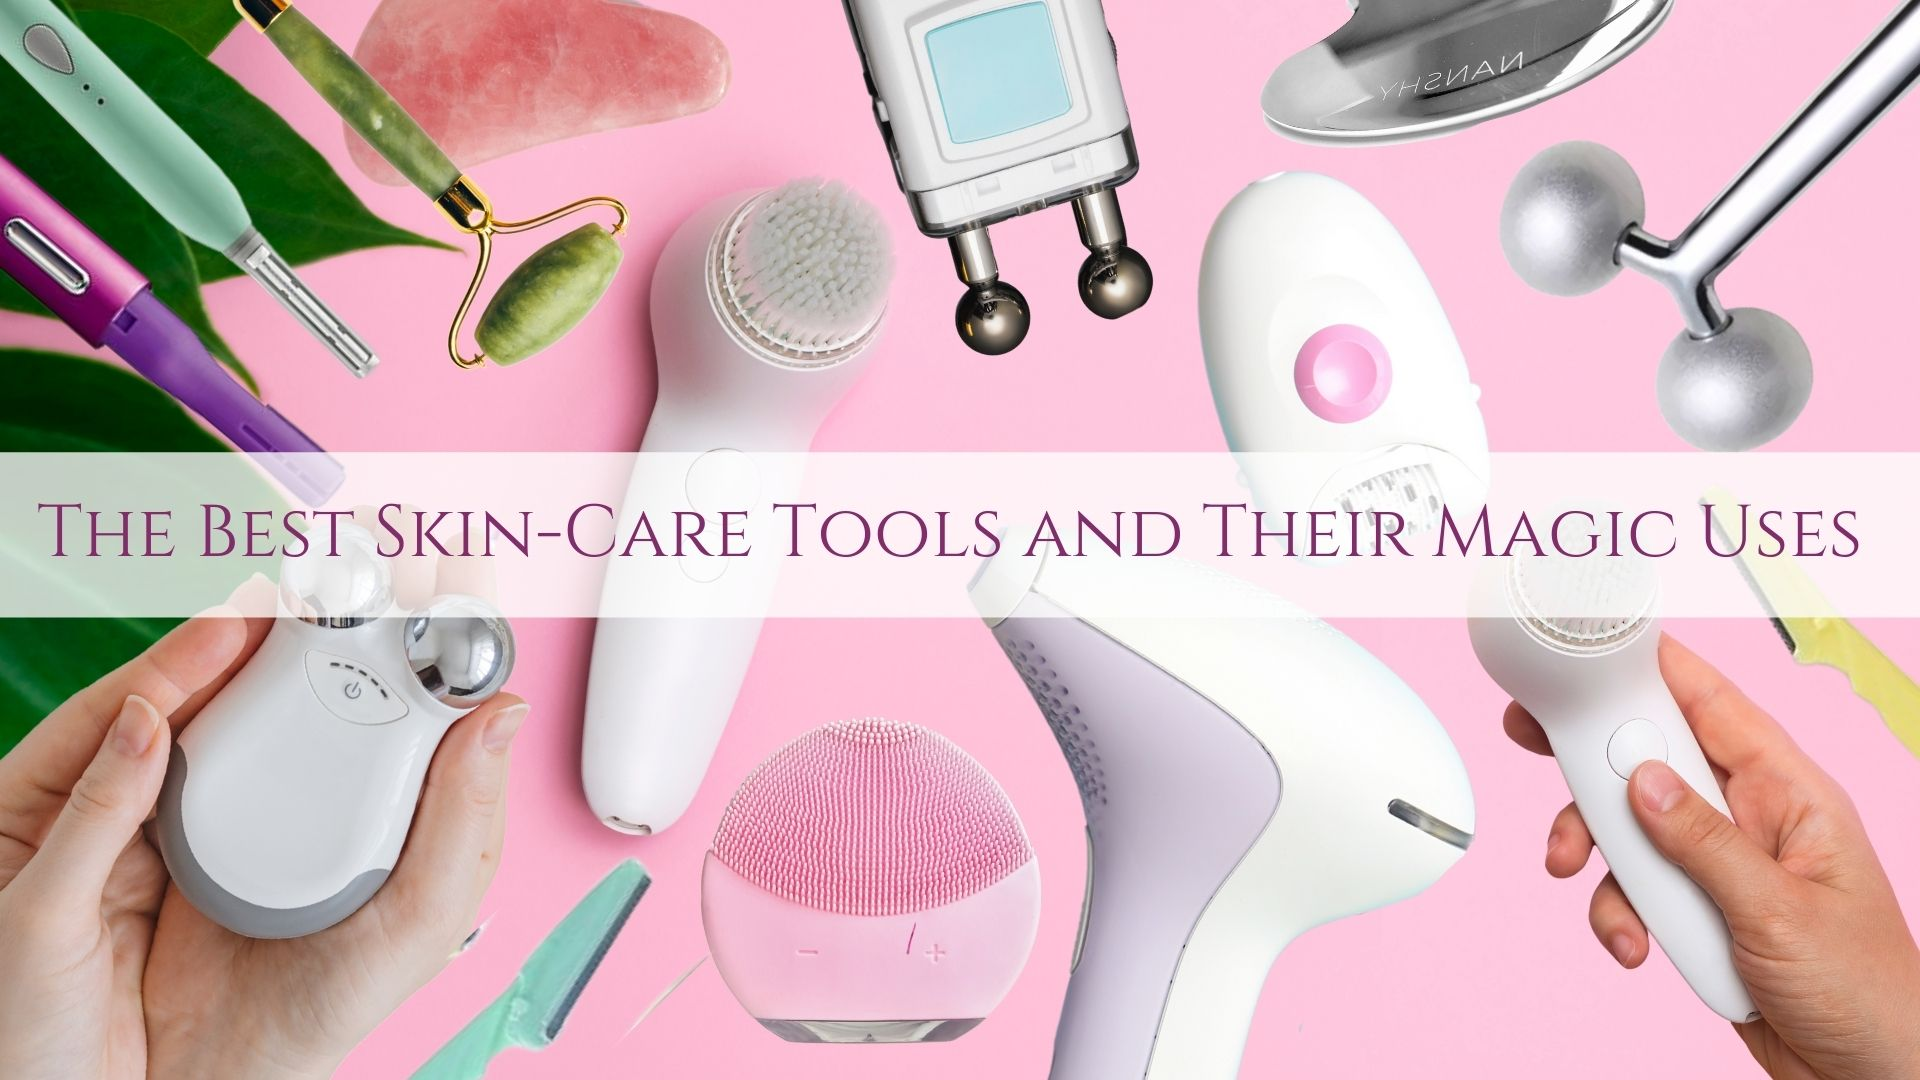 The Best Skin-Care Tools and Their Magic Uses